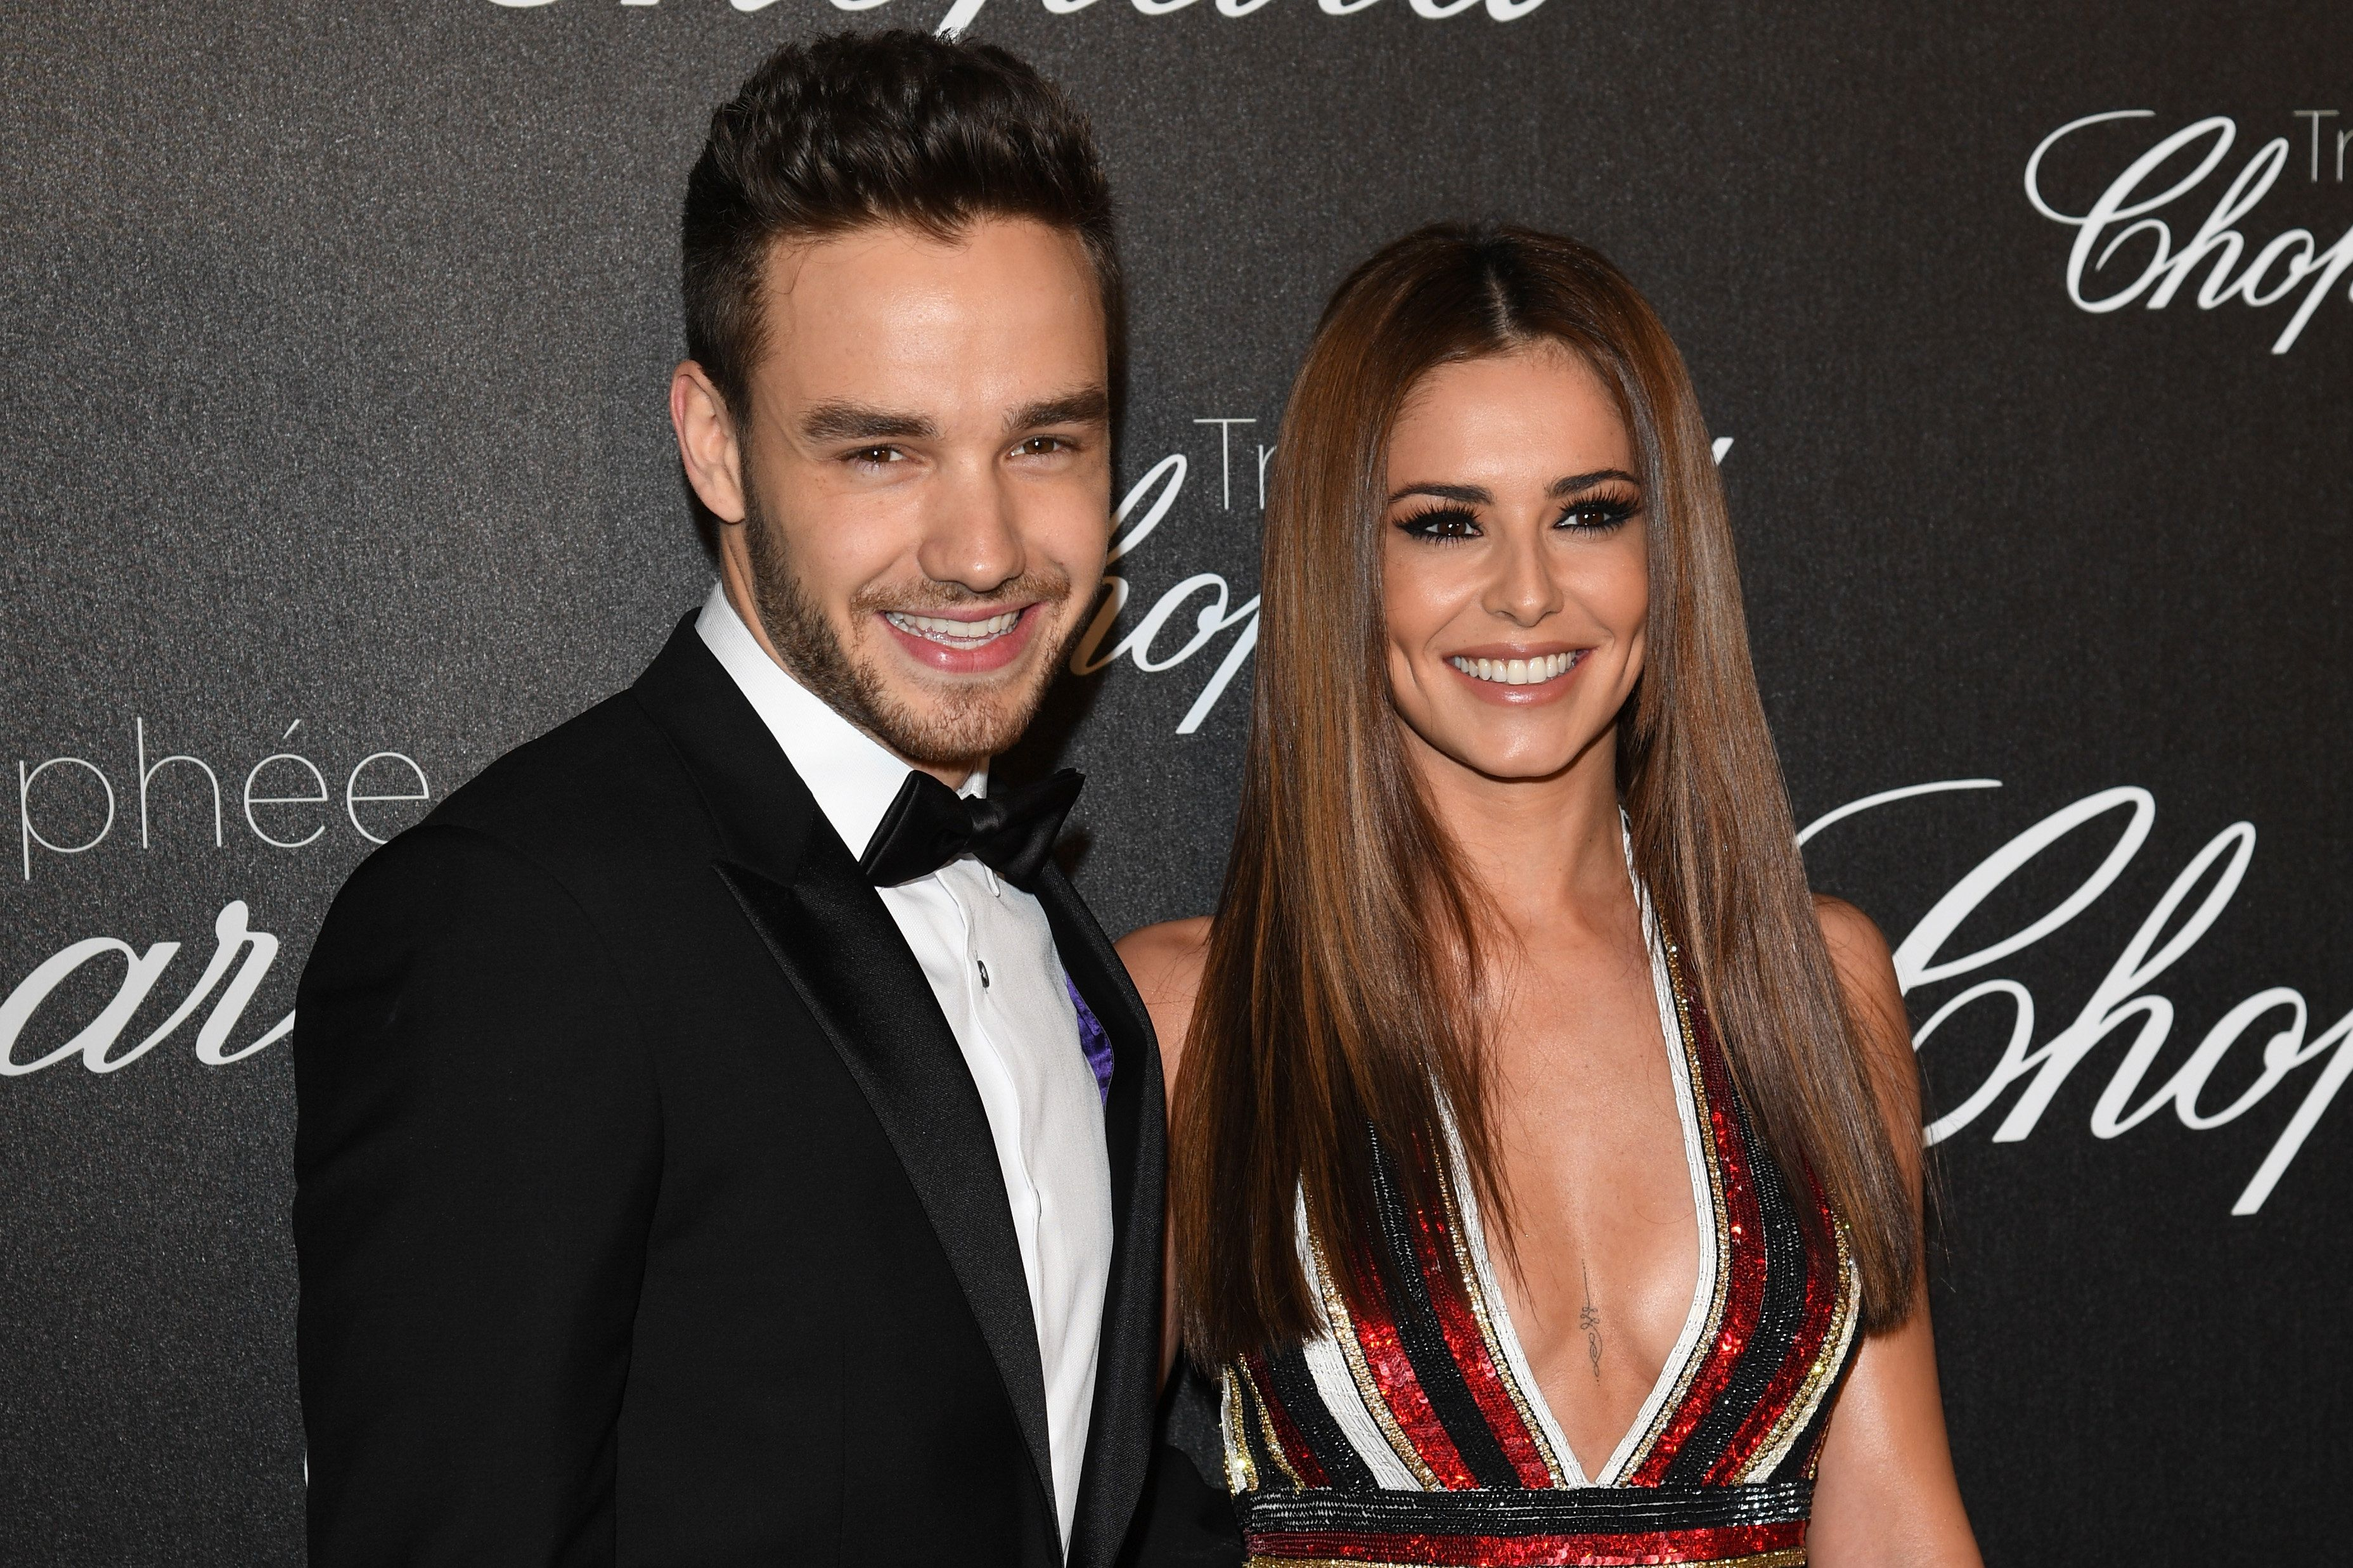 Cheryl And Liam Payne Announce They Have Split Up